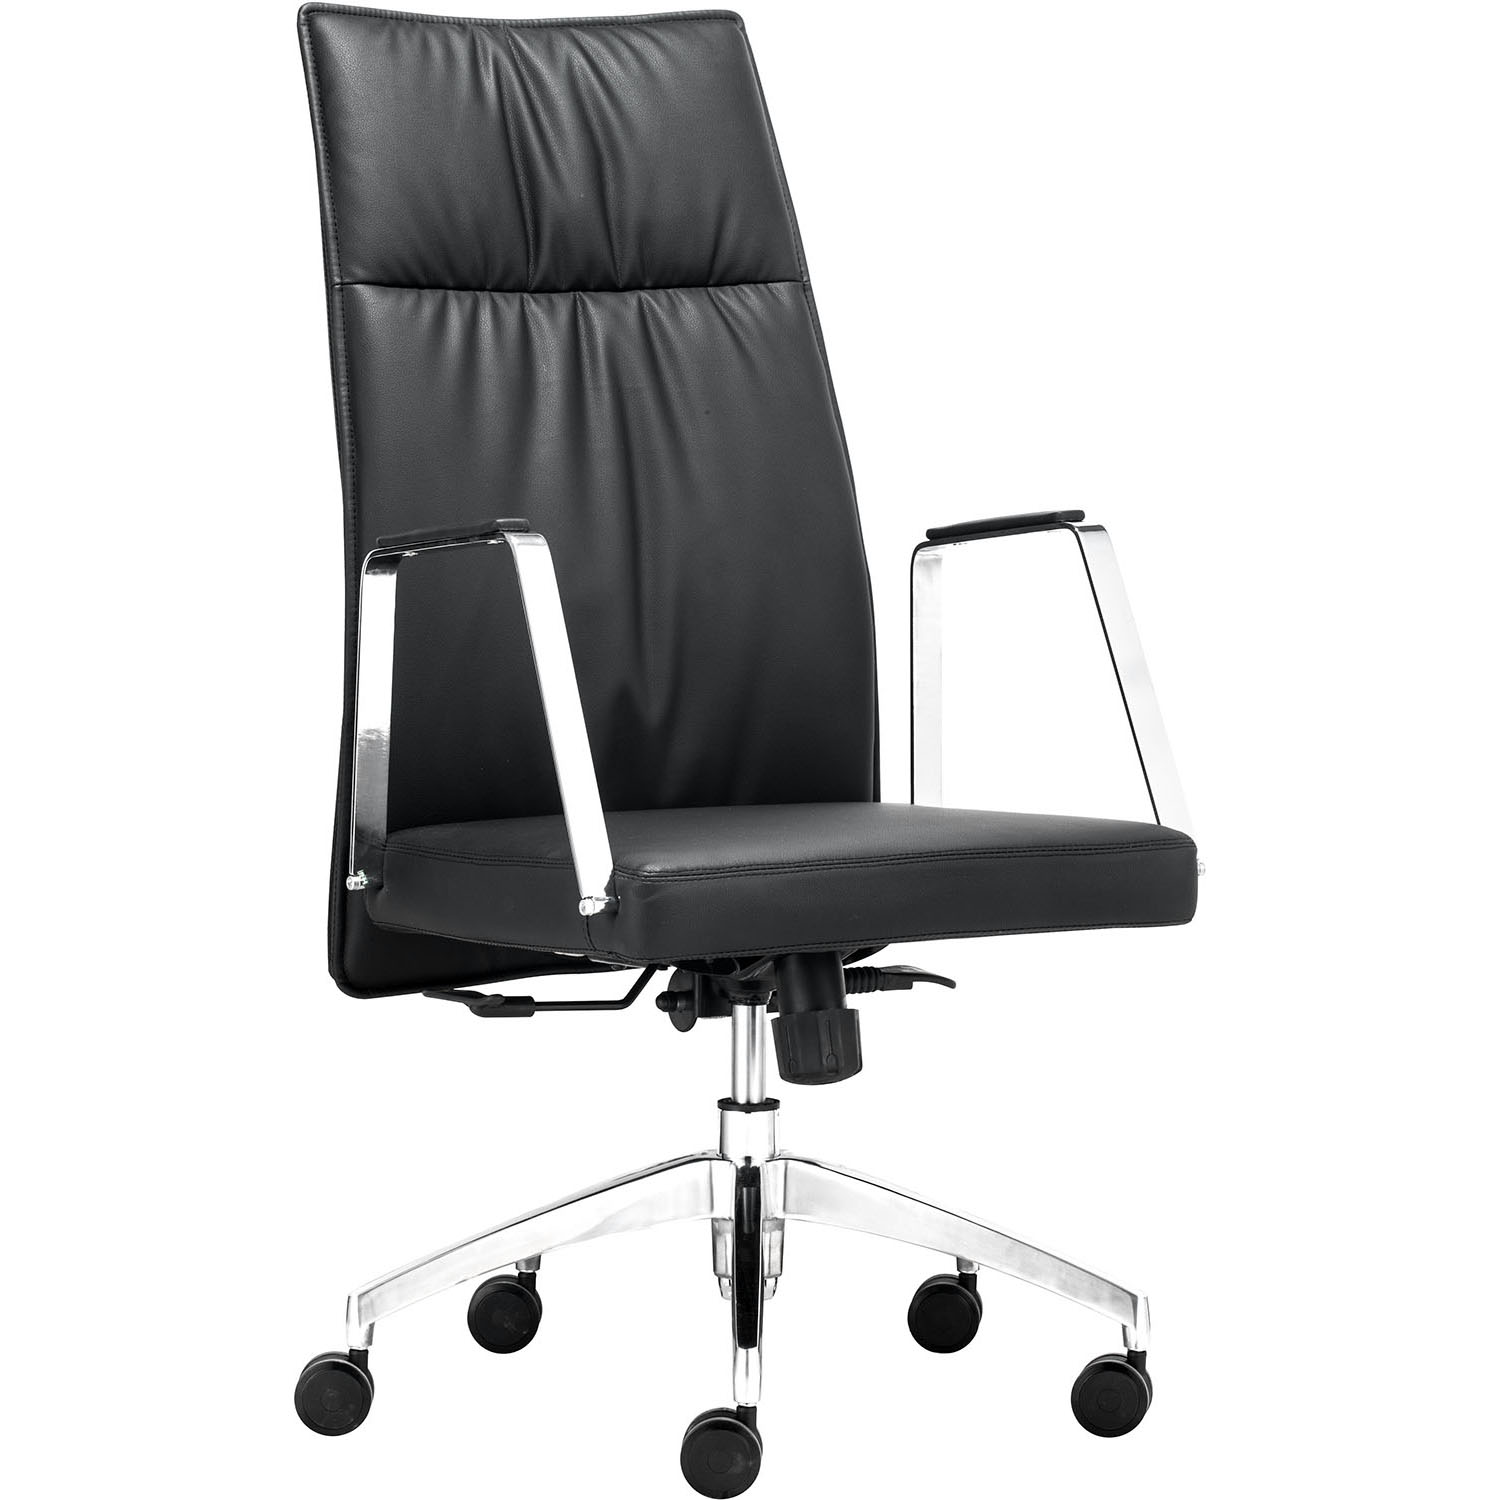 Dean High Back Adjustable Rolling Office Armchair 206130, 206131